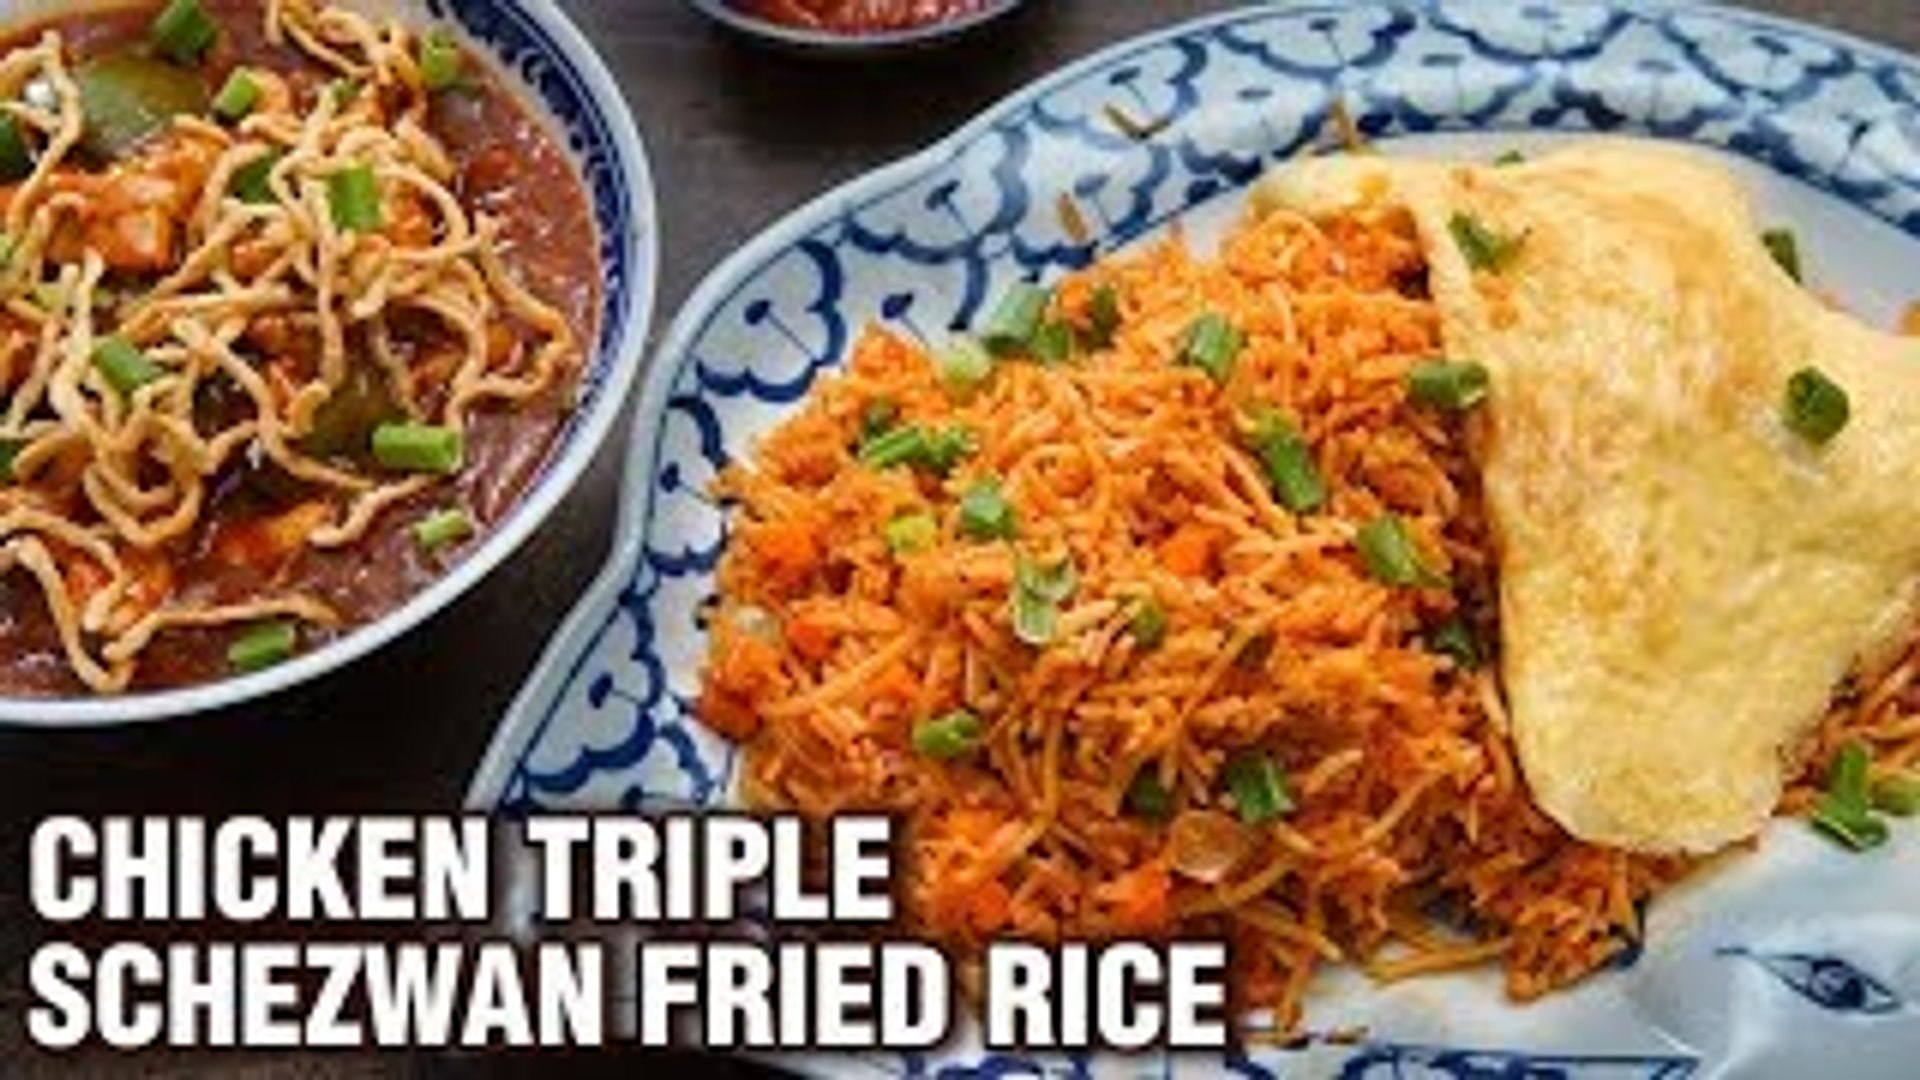 Chicken Triple Schezwan Fried Rice - Restaurant Style Chicken Fried Rice - Indo-Chinese Recipe